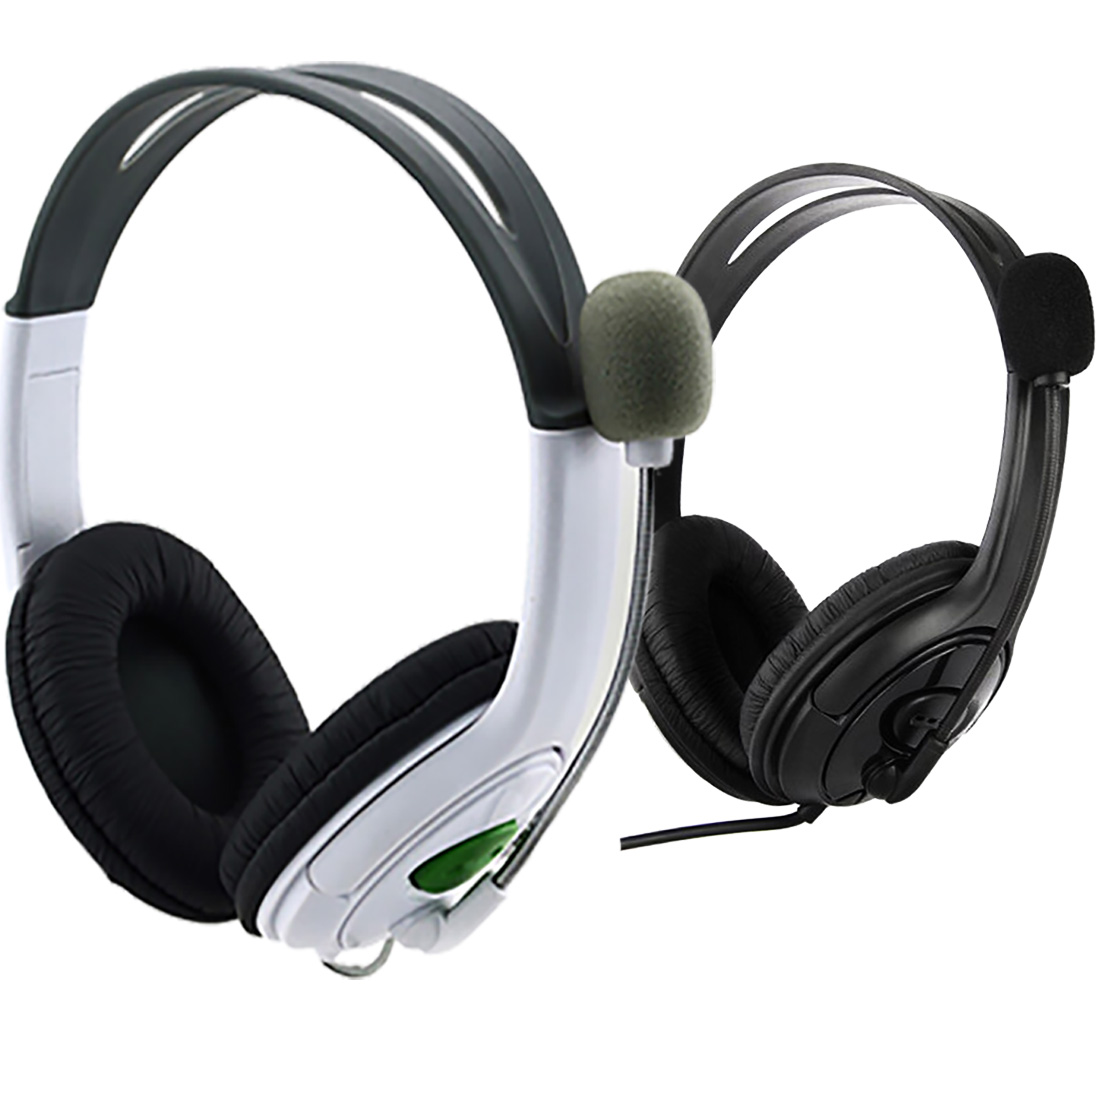 New Fashion Hot Sale PC Gamer Over-ear Game Gaming Headphone Headset usb dual Earphone Headband with Mic Stereo Bass for ps3 pc hot 3 5mm led illuminated headband style gaming headset headphone with mic for pc wholesale